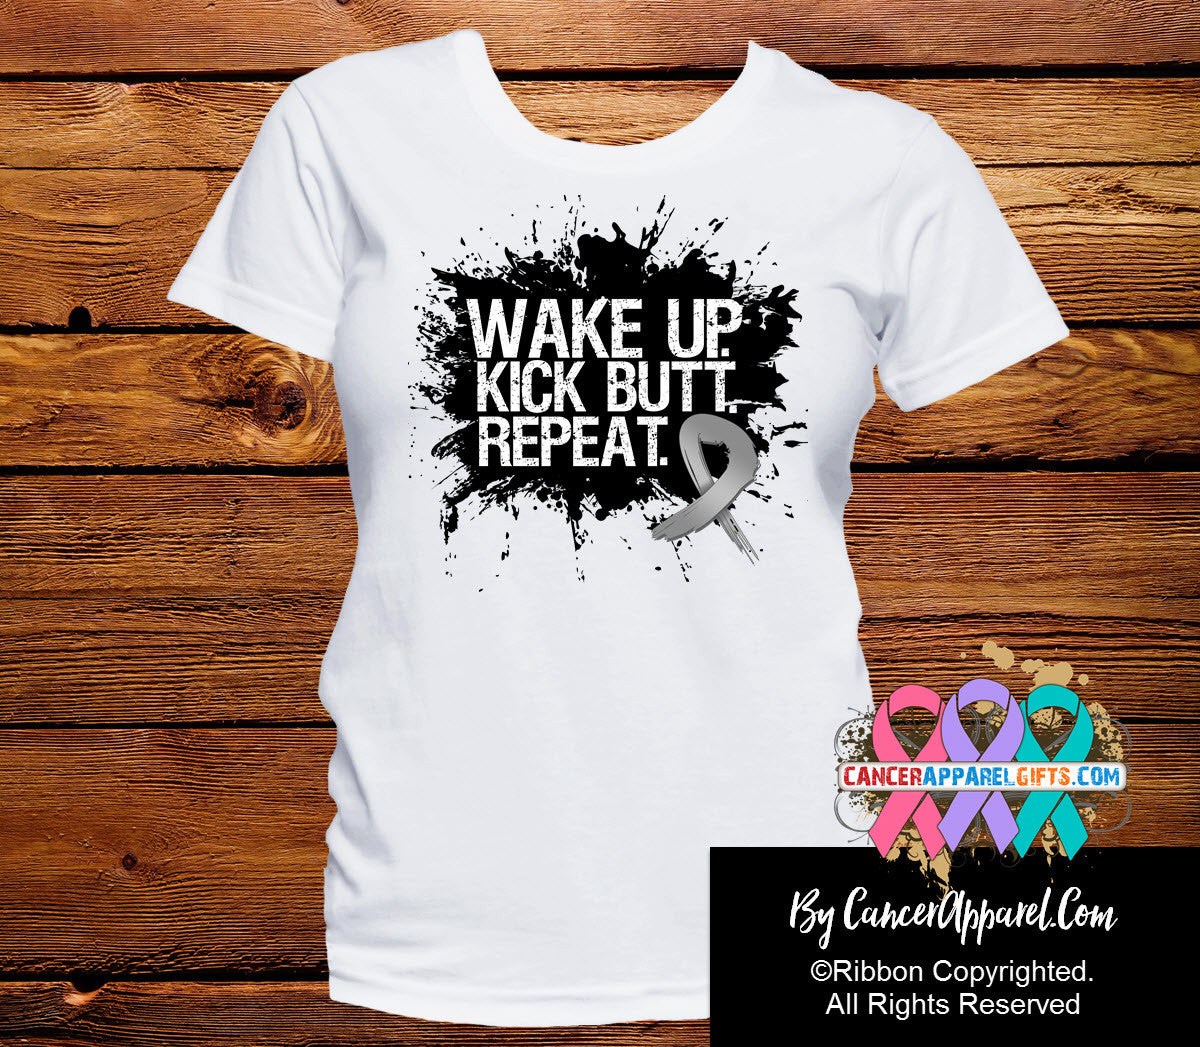 Brain Cancer Shirts Wake Up Kick Butt and Repeat - Cancer Apparel and Gifts